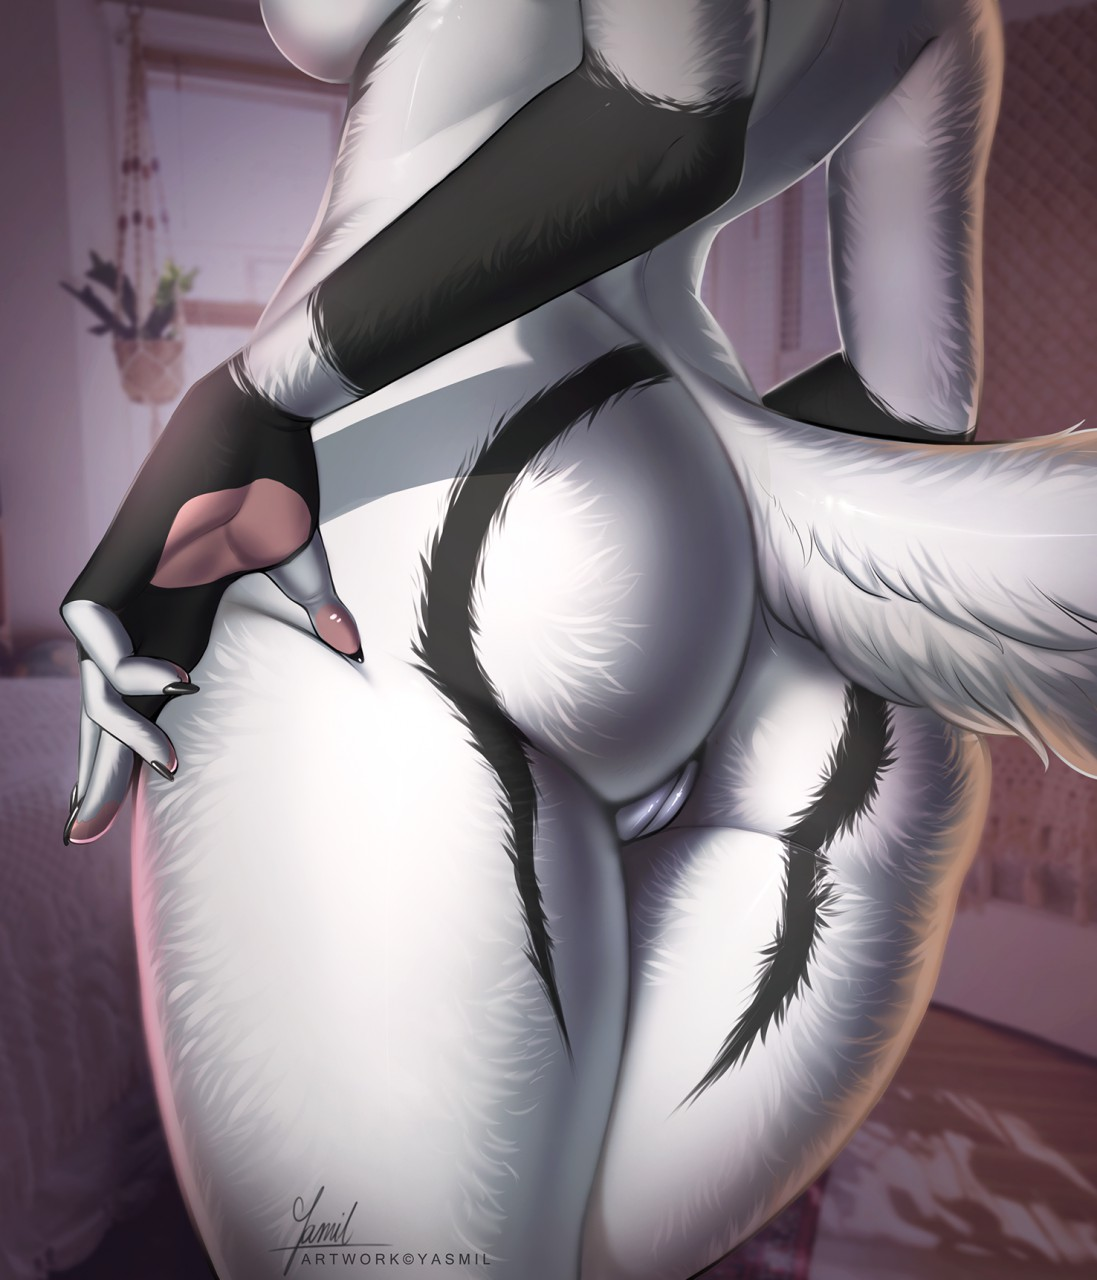 5 Fingers In Pussy rule 34 - 2019 5 fingers anthro breasts canid canine